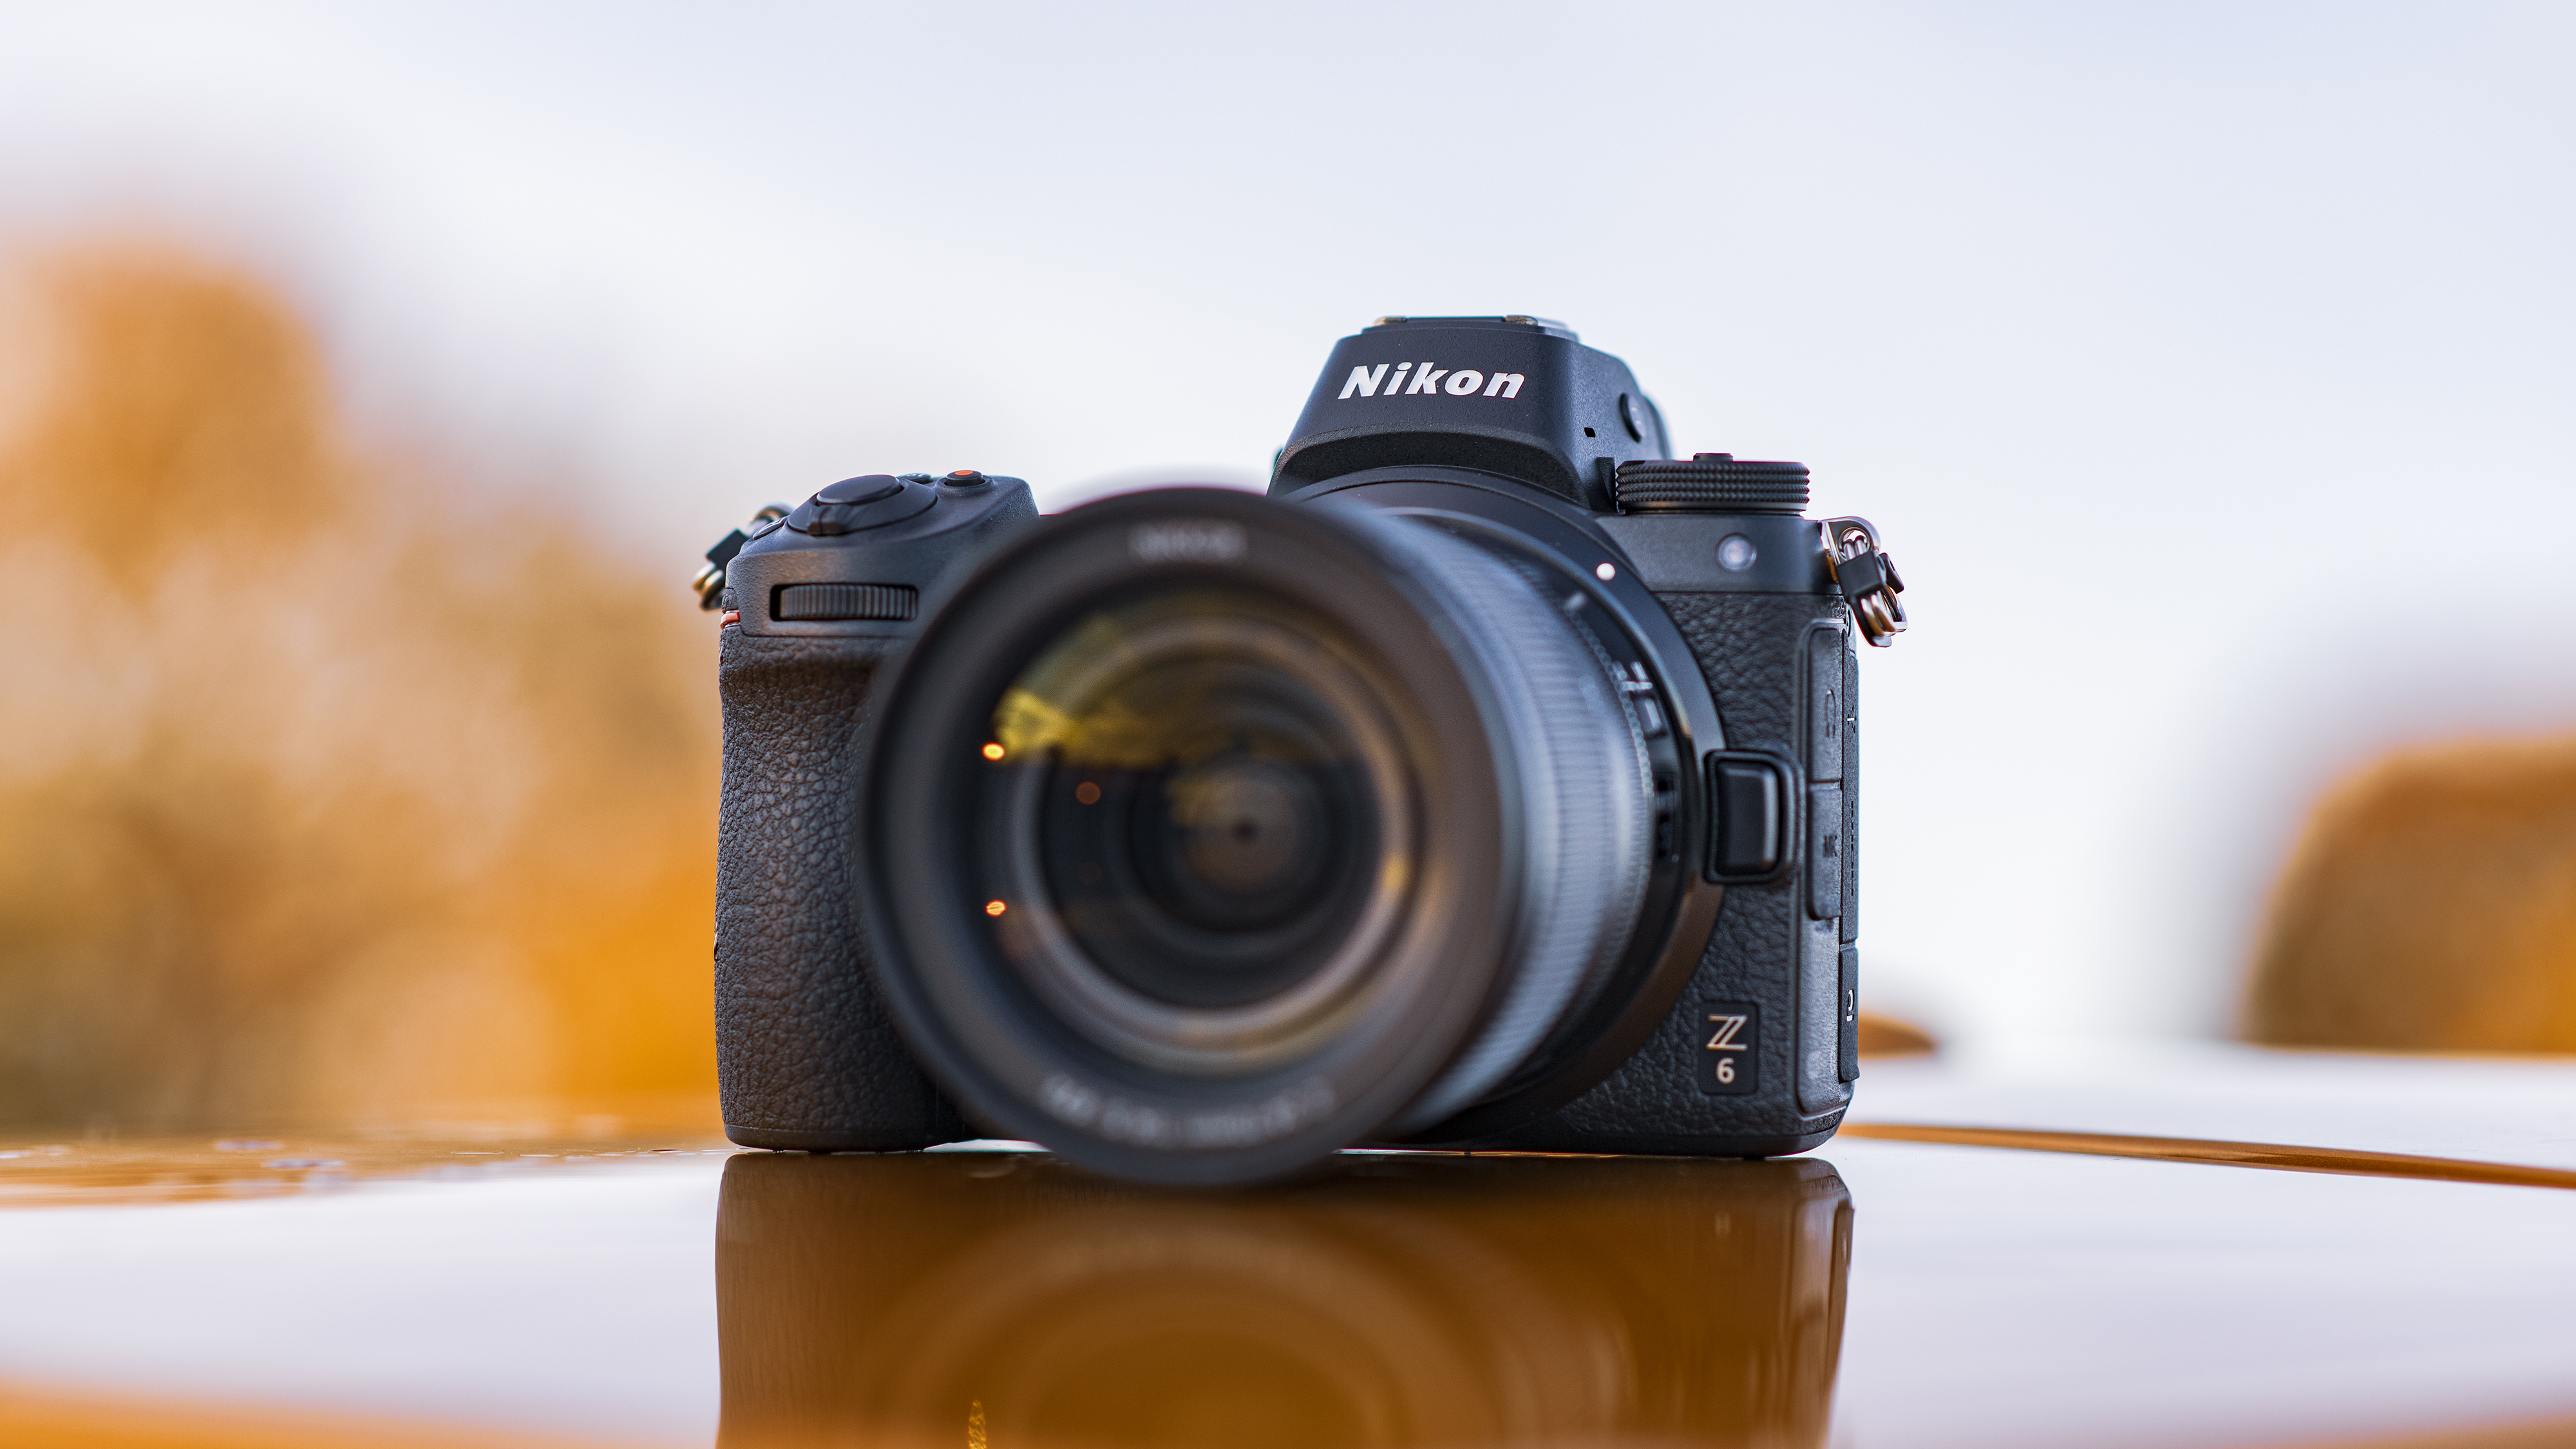 Best mirrorless camera 2019: 10 top models to suit every budget